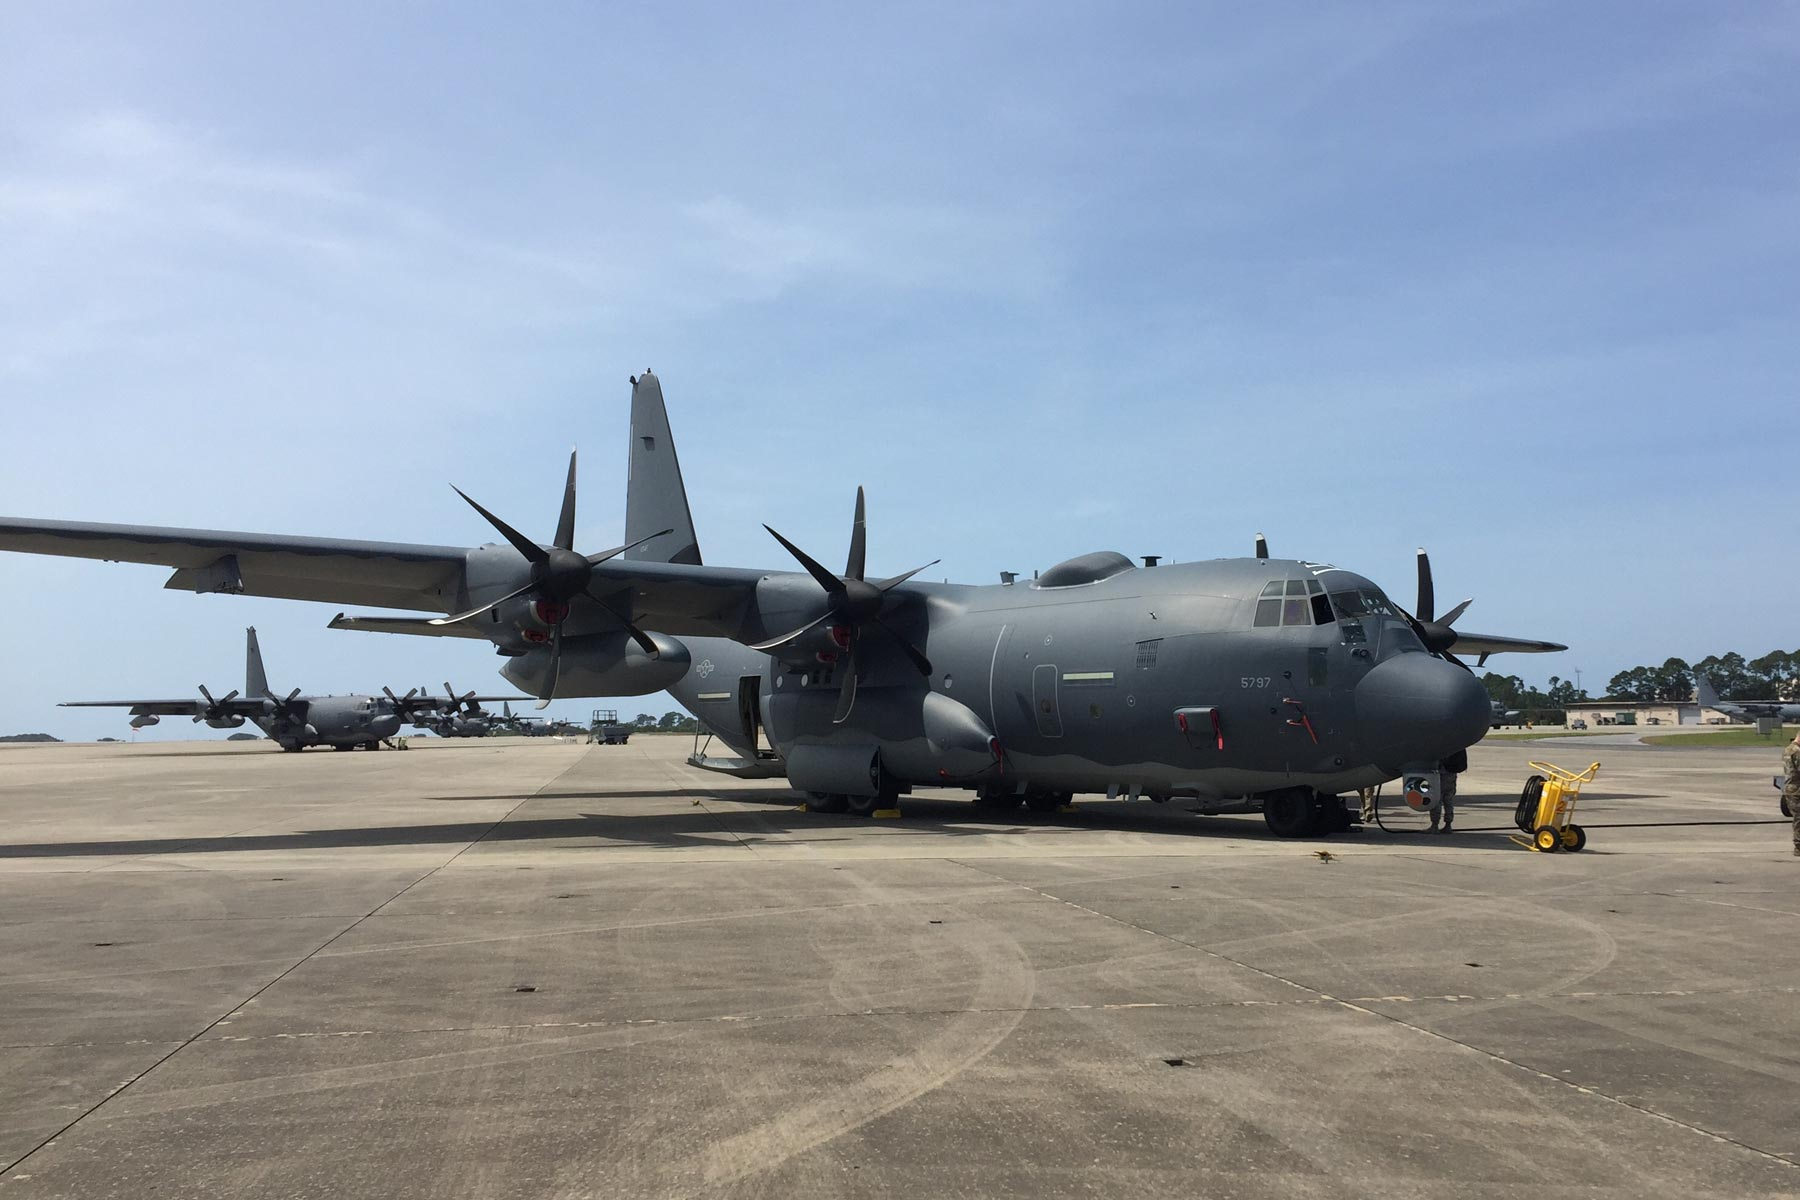 Special Operators Predict Ac 130j Will Be Most Requested